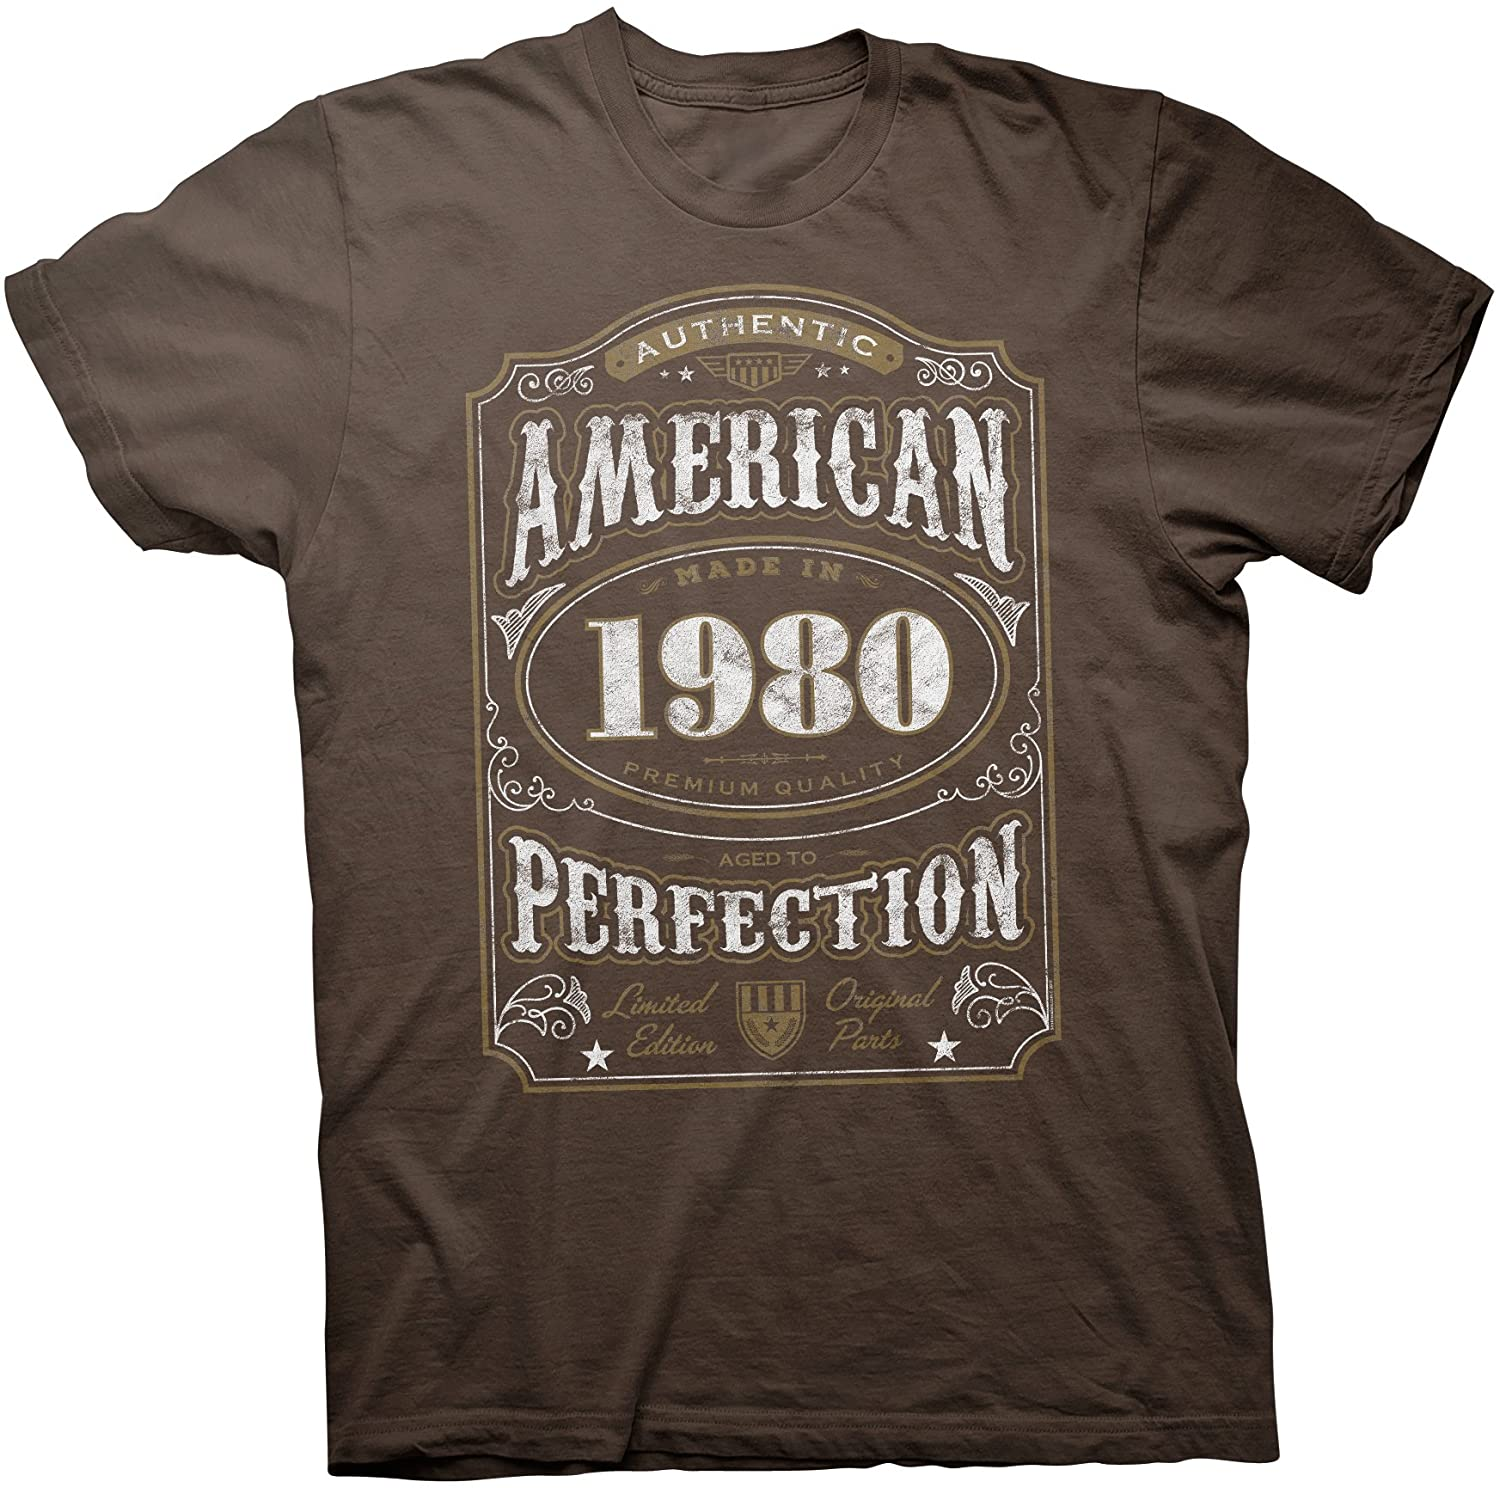 40th Birthday Gift Shirt - Authentic American 1980 Aged to Perfection